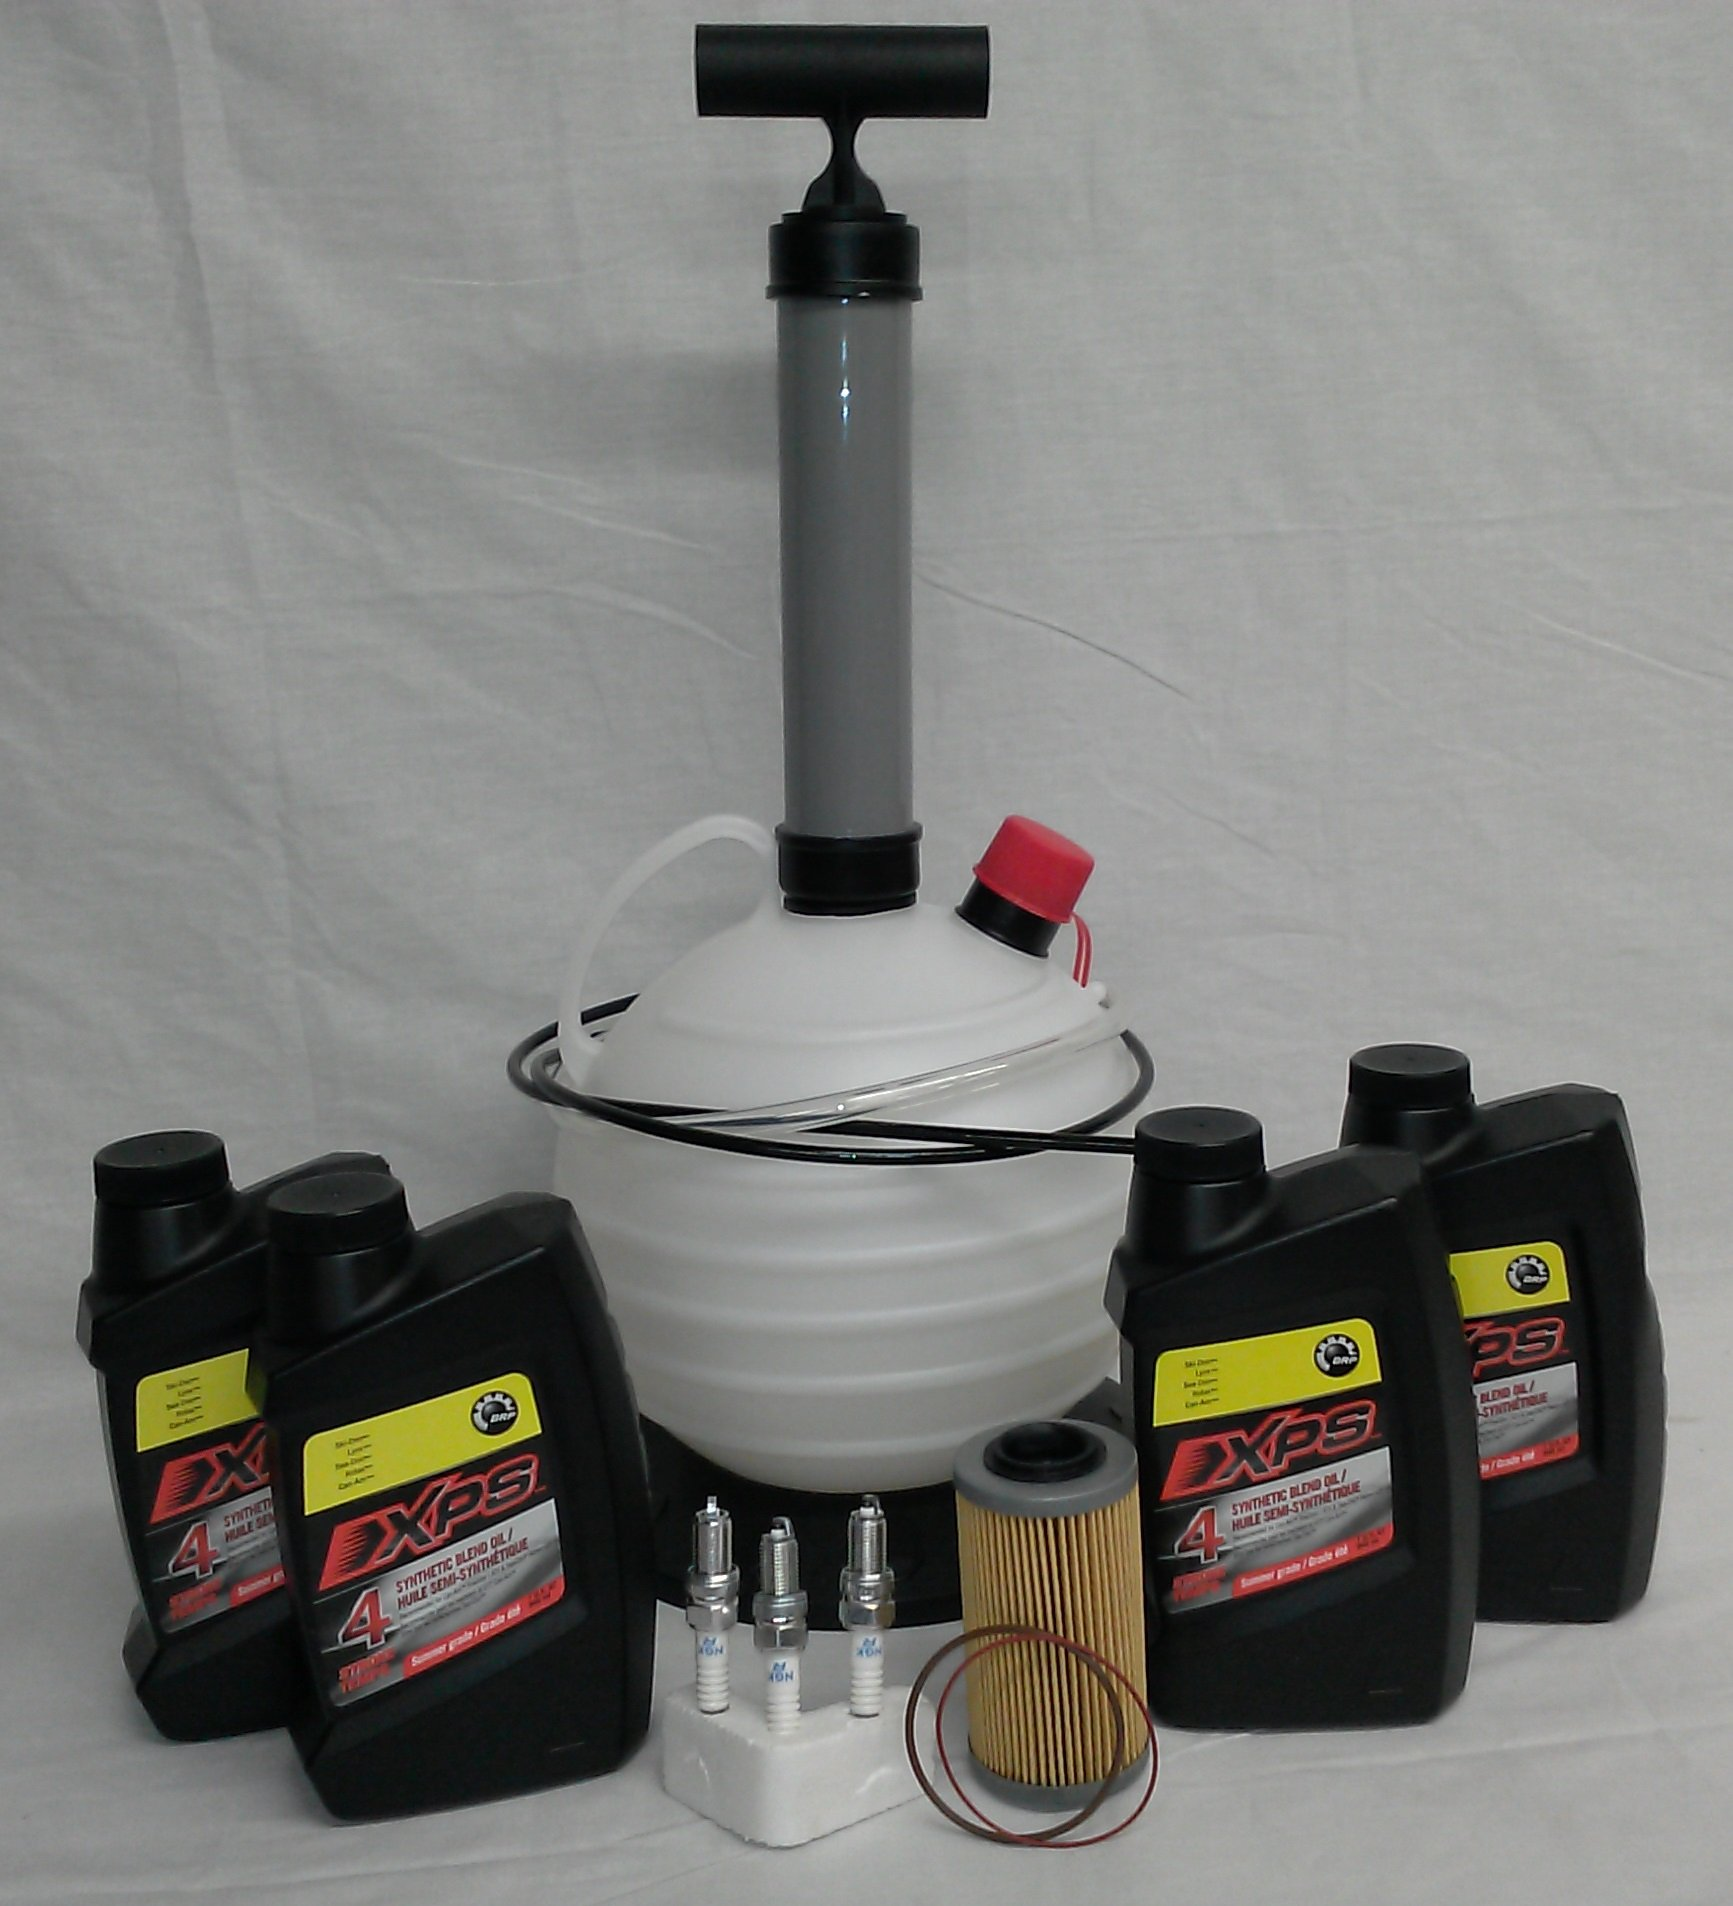 Sea Doo Oil Change Kit 4 Tec Four Stroke SeaDoo PWC GTX RXP RXT GTI With Ultimate Oil Pump by Can-Am